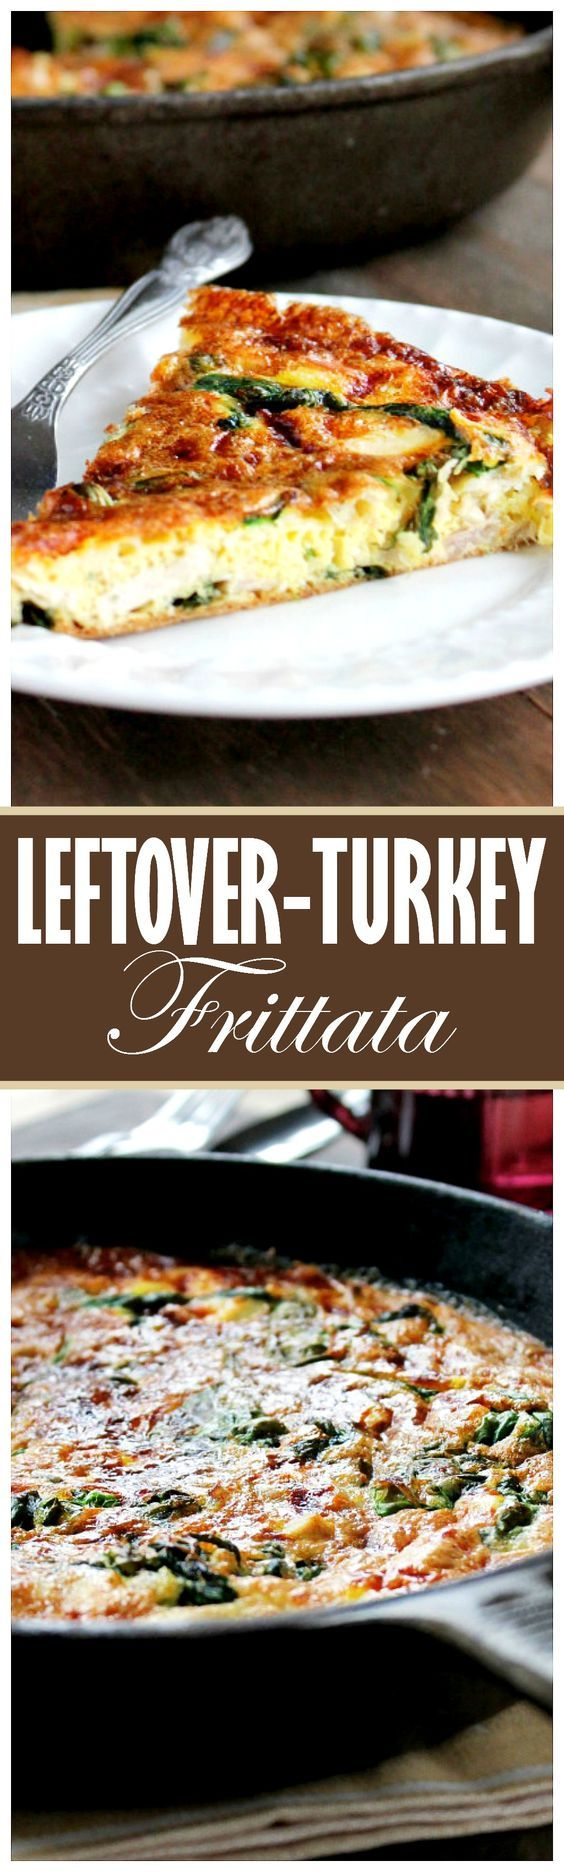 This simple Leftover Turkey Frittata with spinach and mozzarella is easy to make…